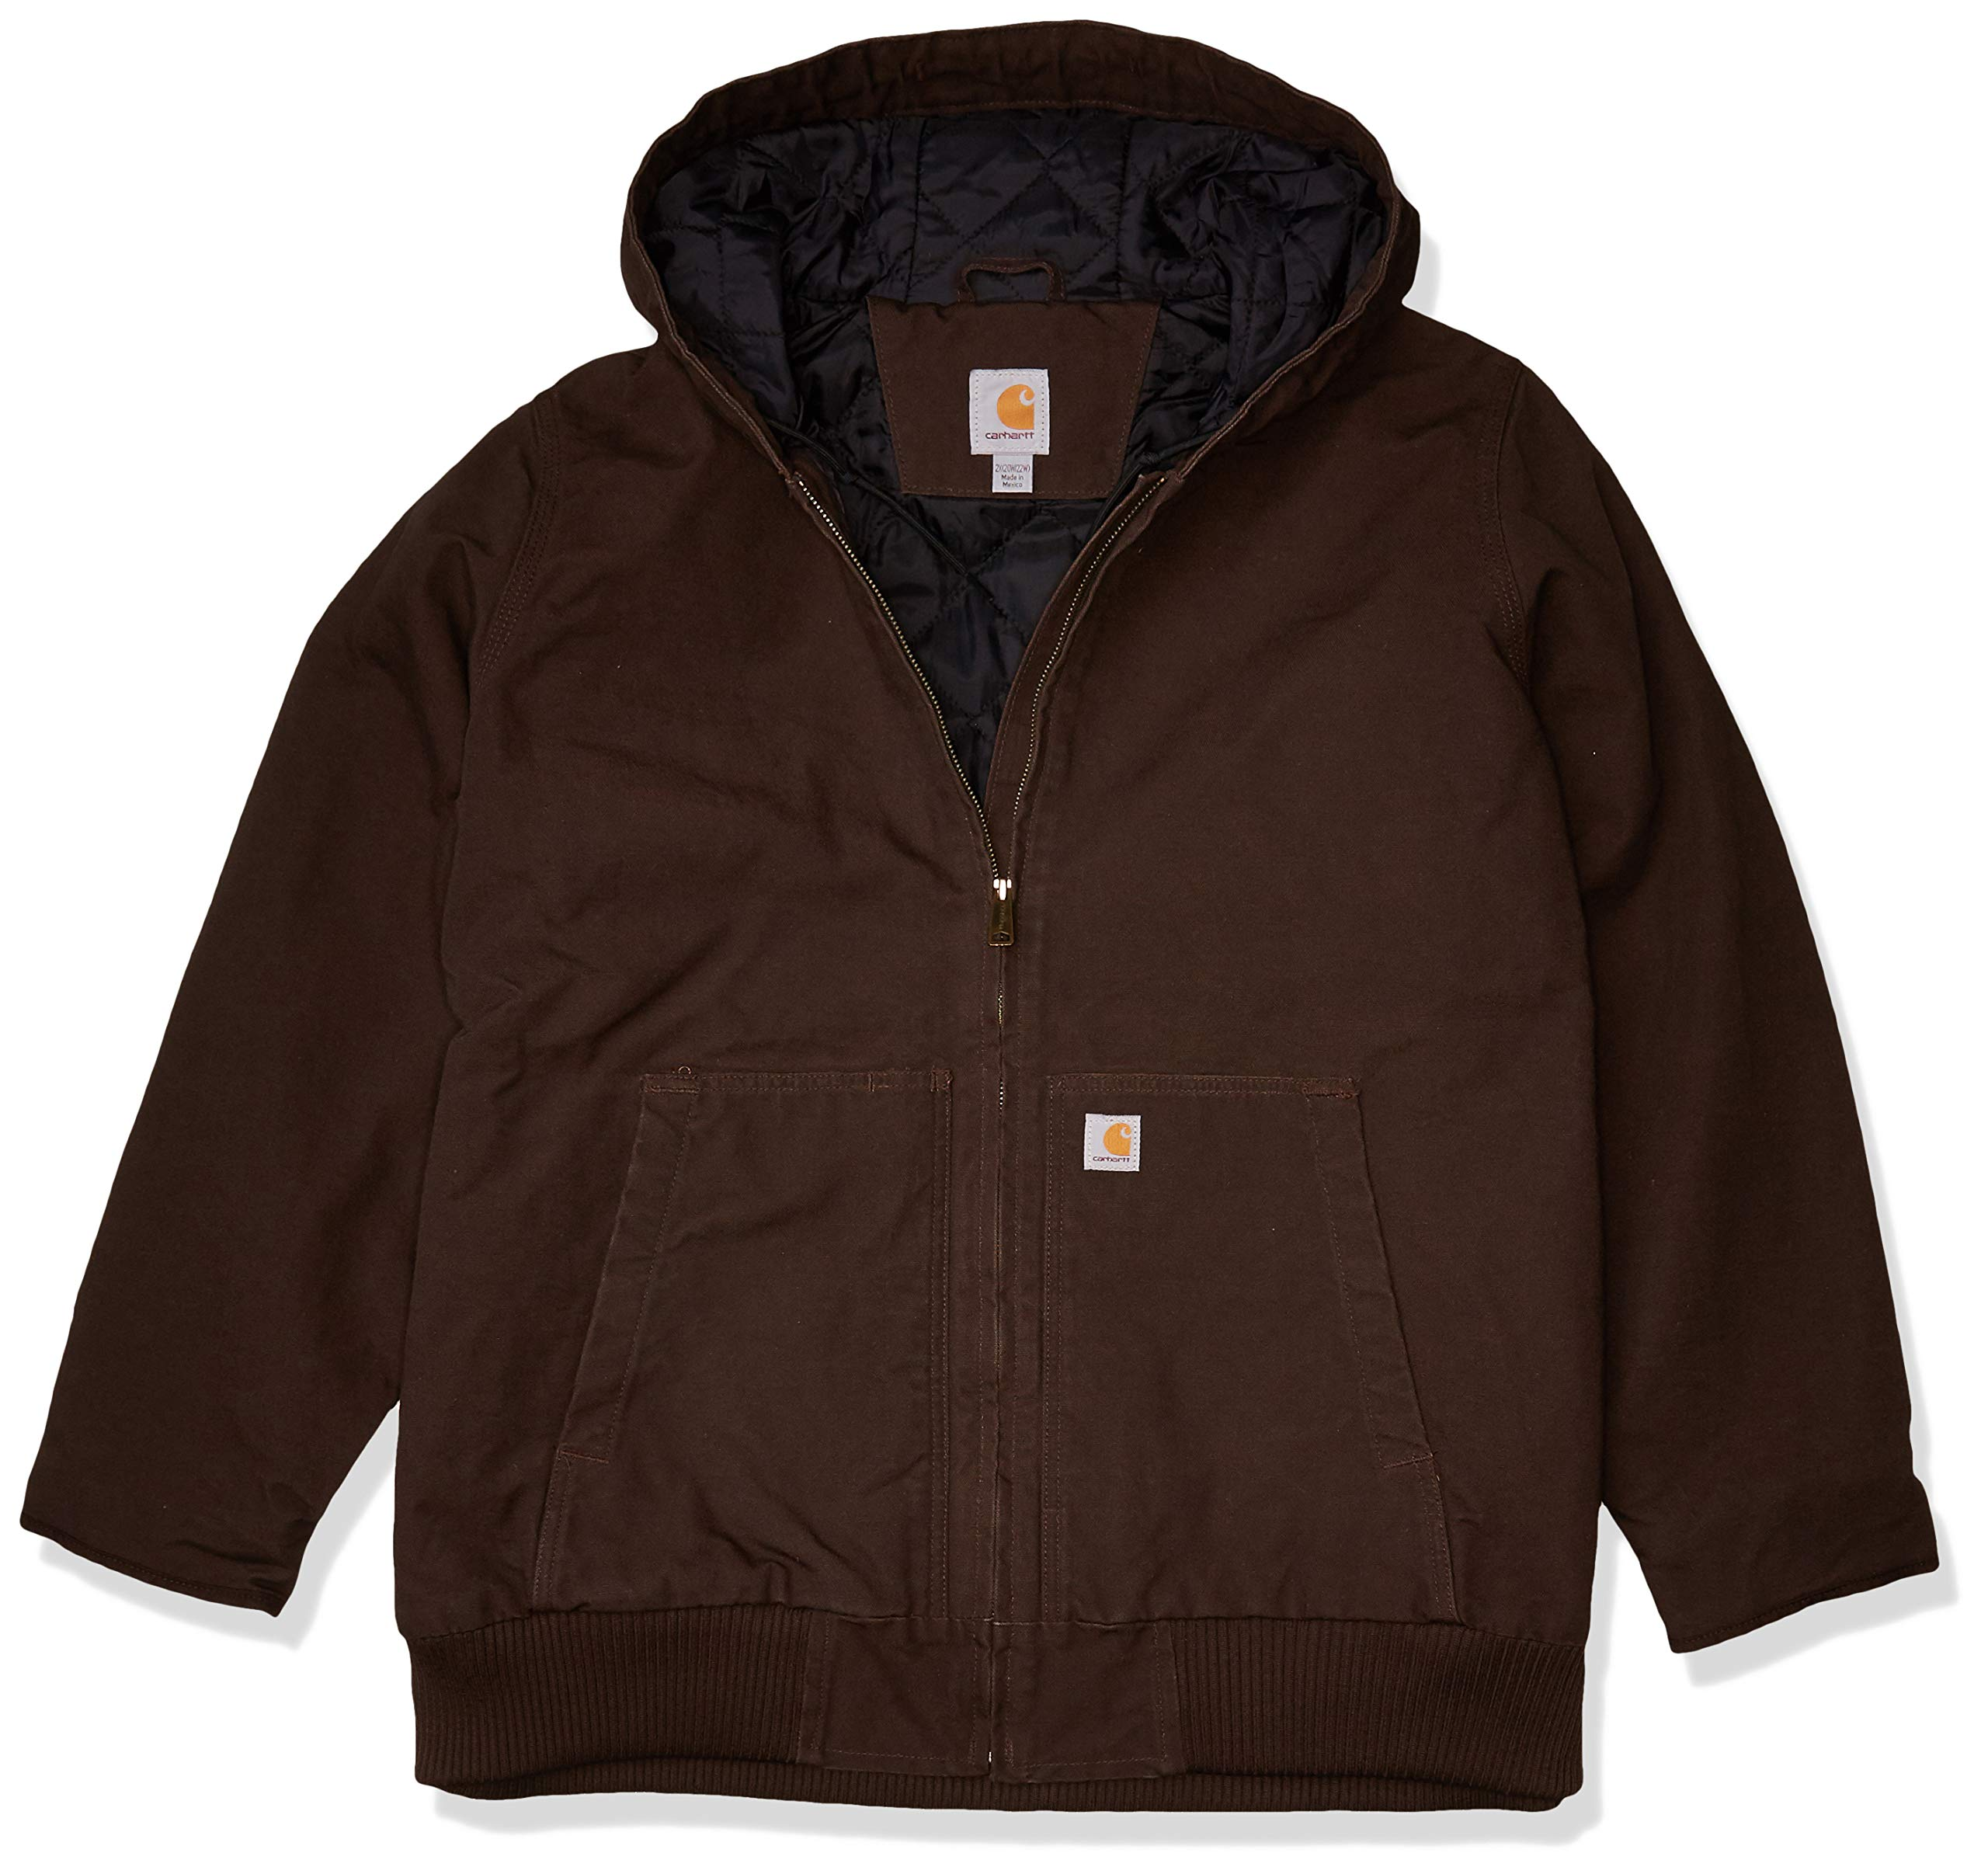 Carhartt Women's Plus-Size Active Jacket